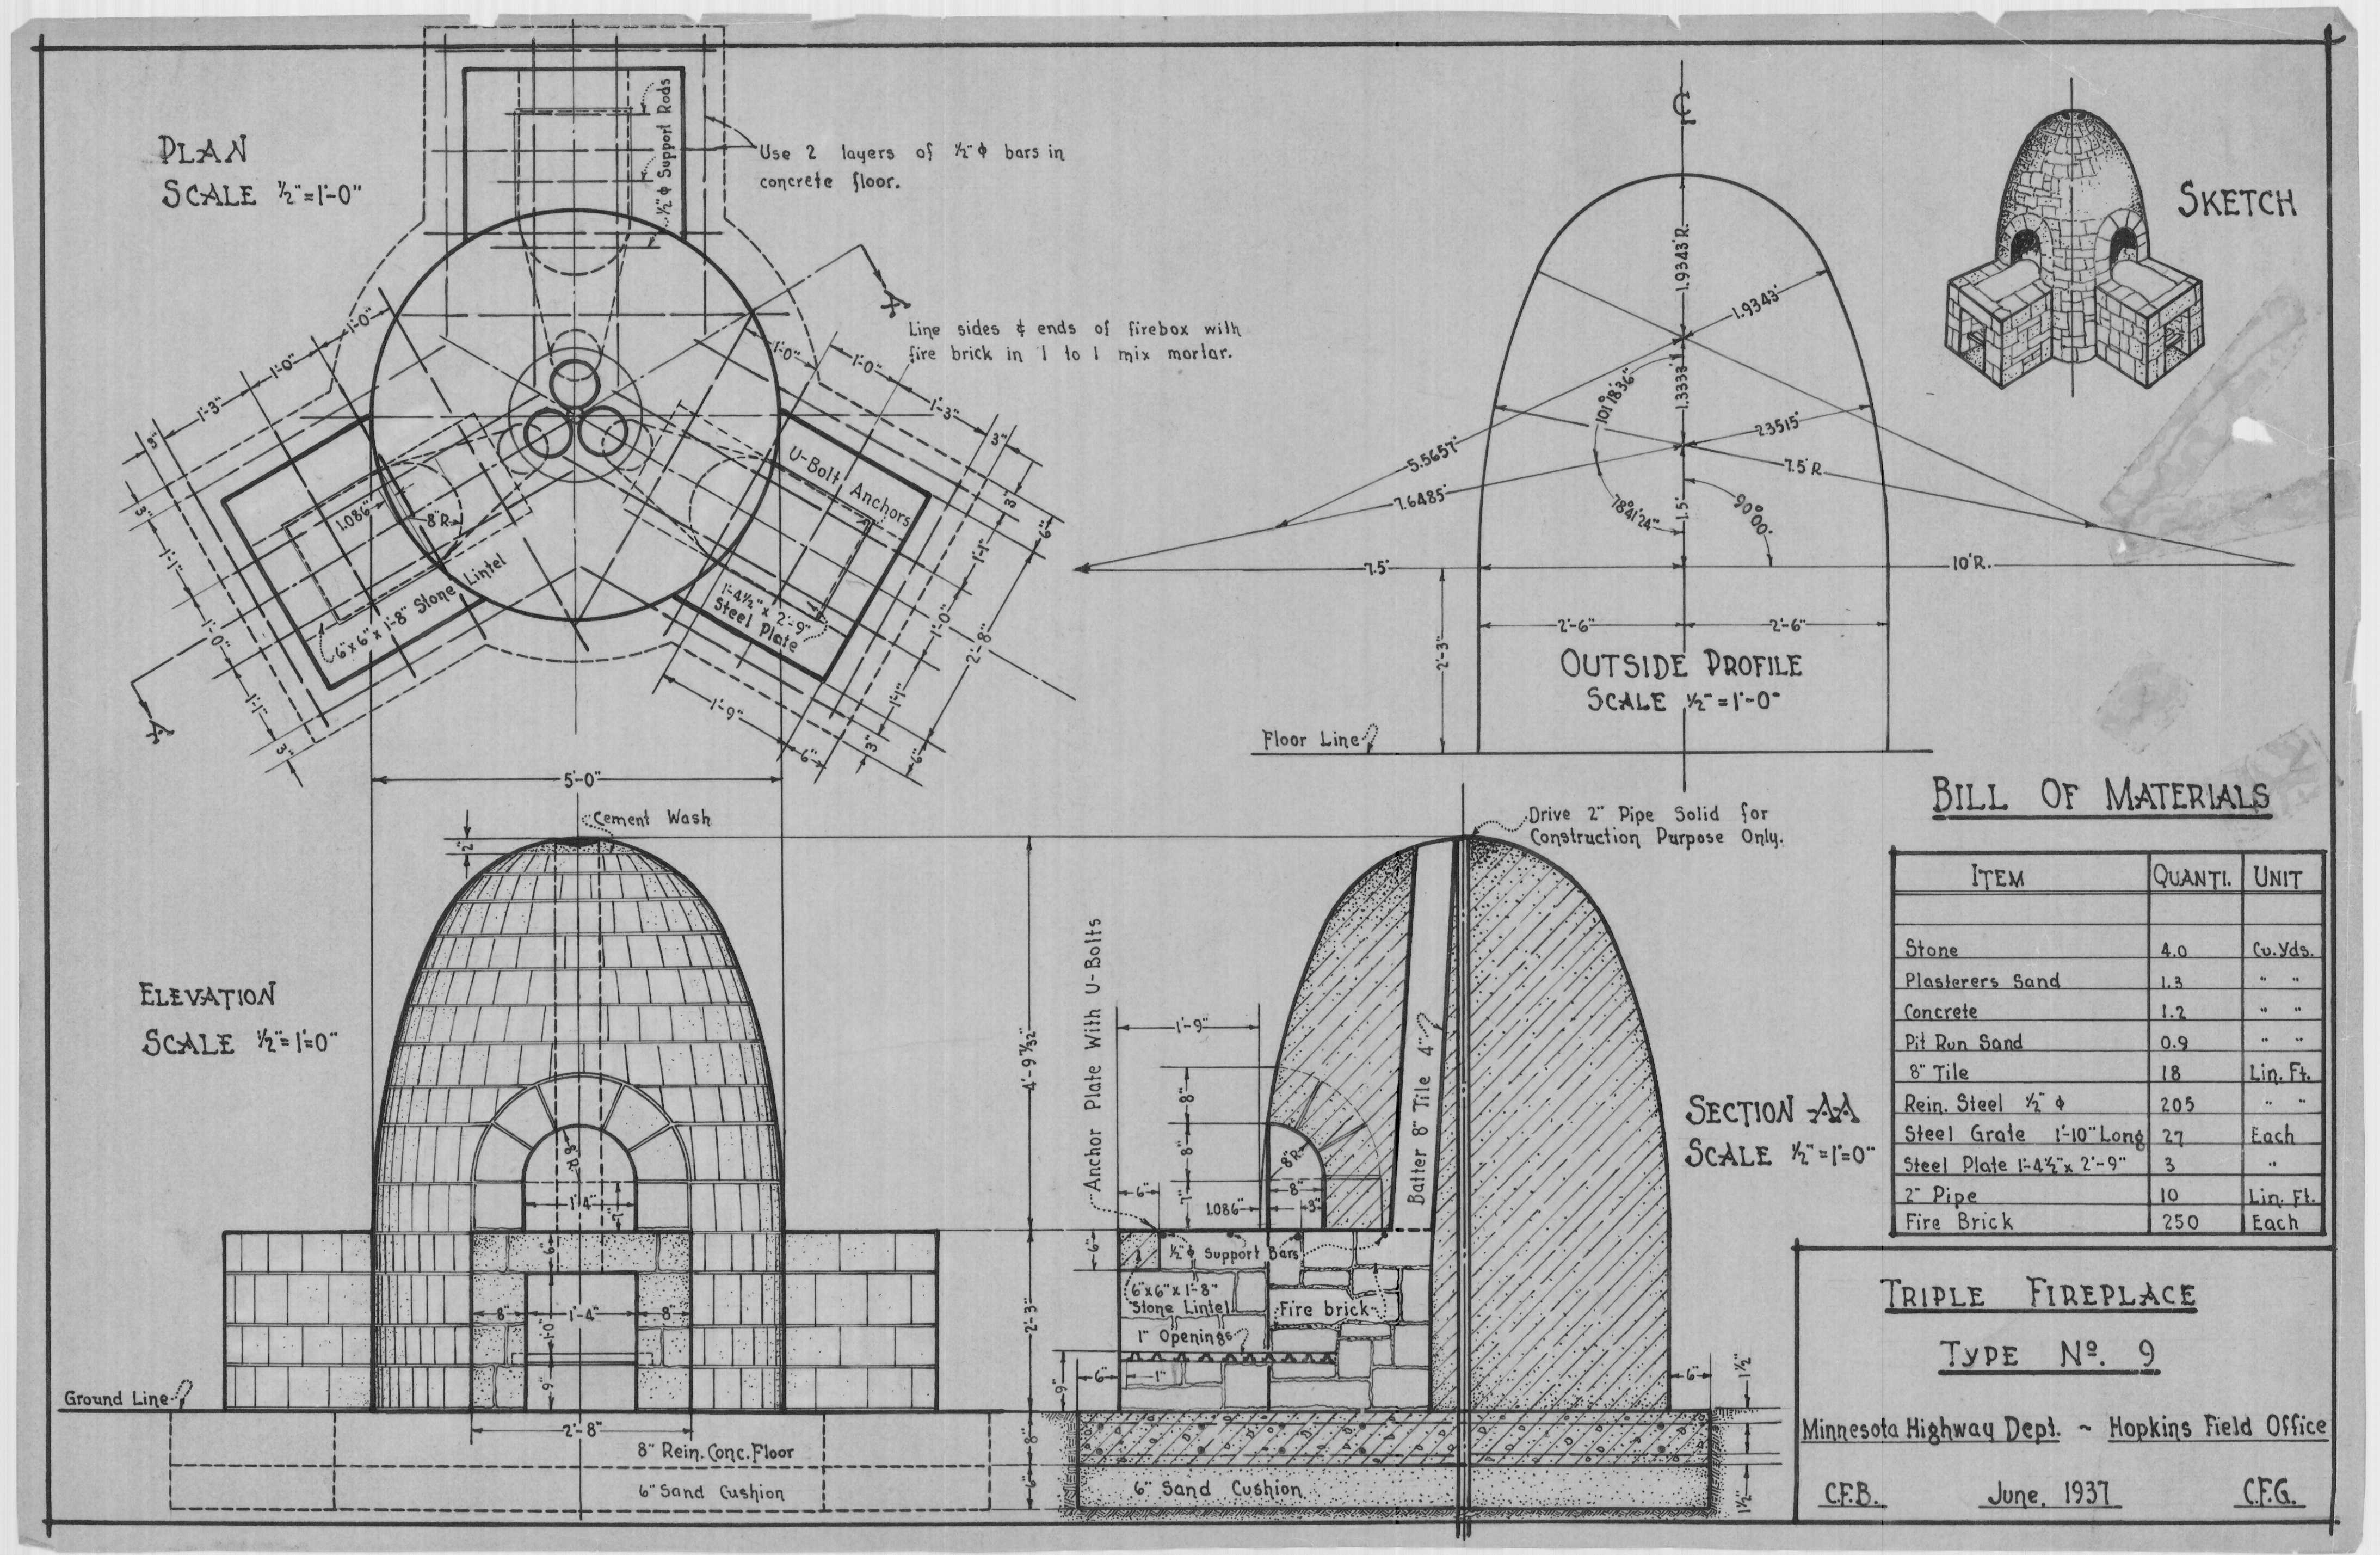 This original plan of a beehive fireplace was drawn in painstaking detail in 1937.